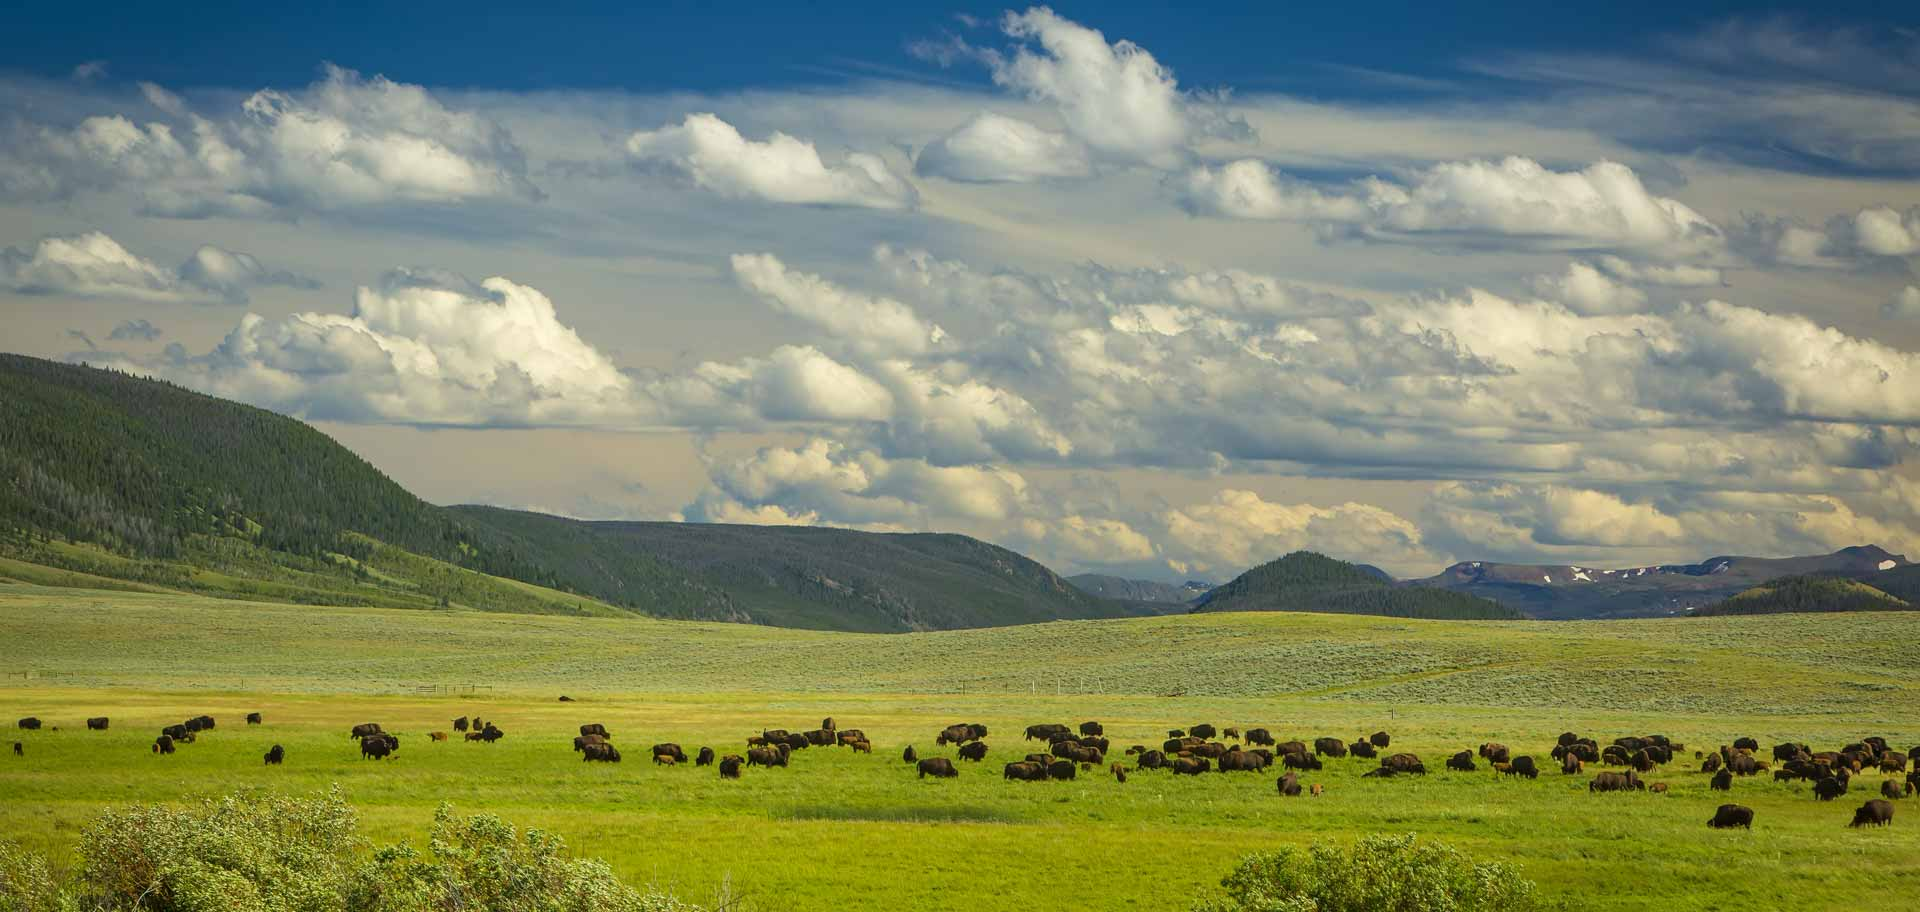 Bison Ranchers